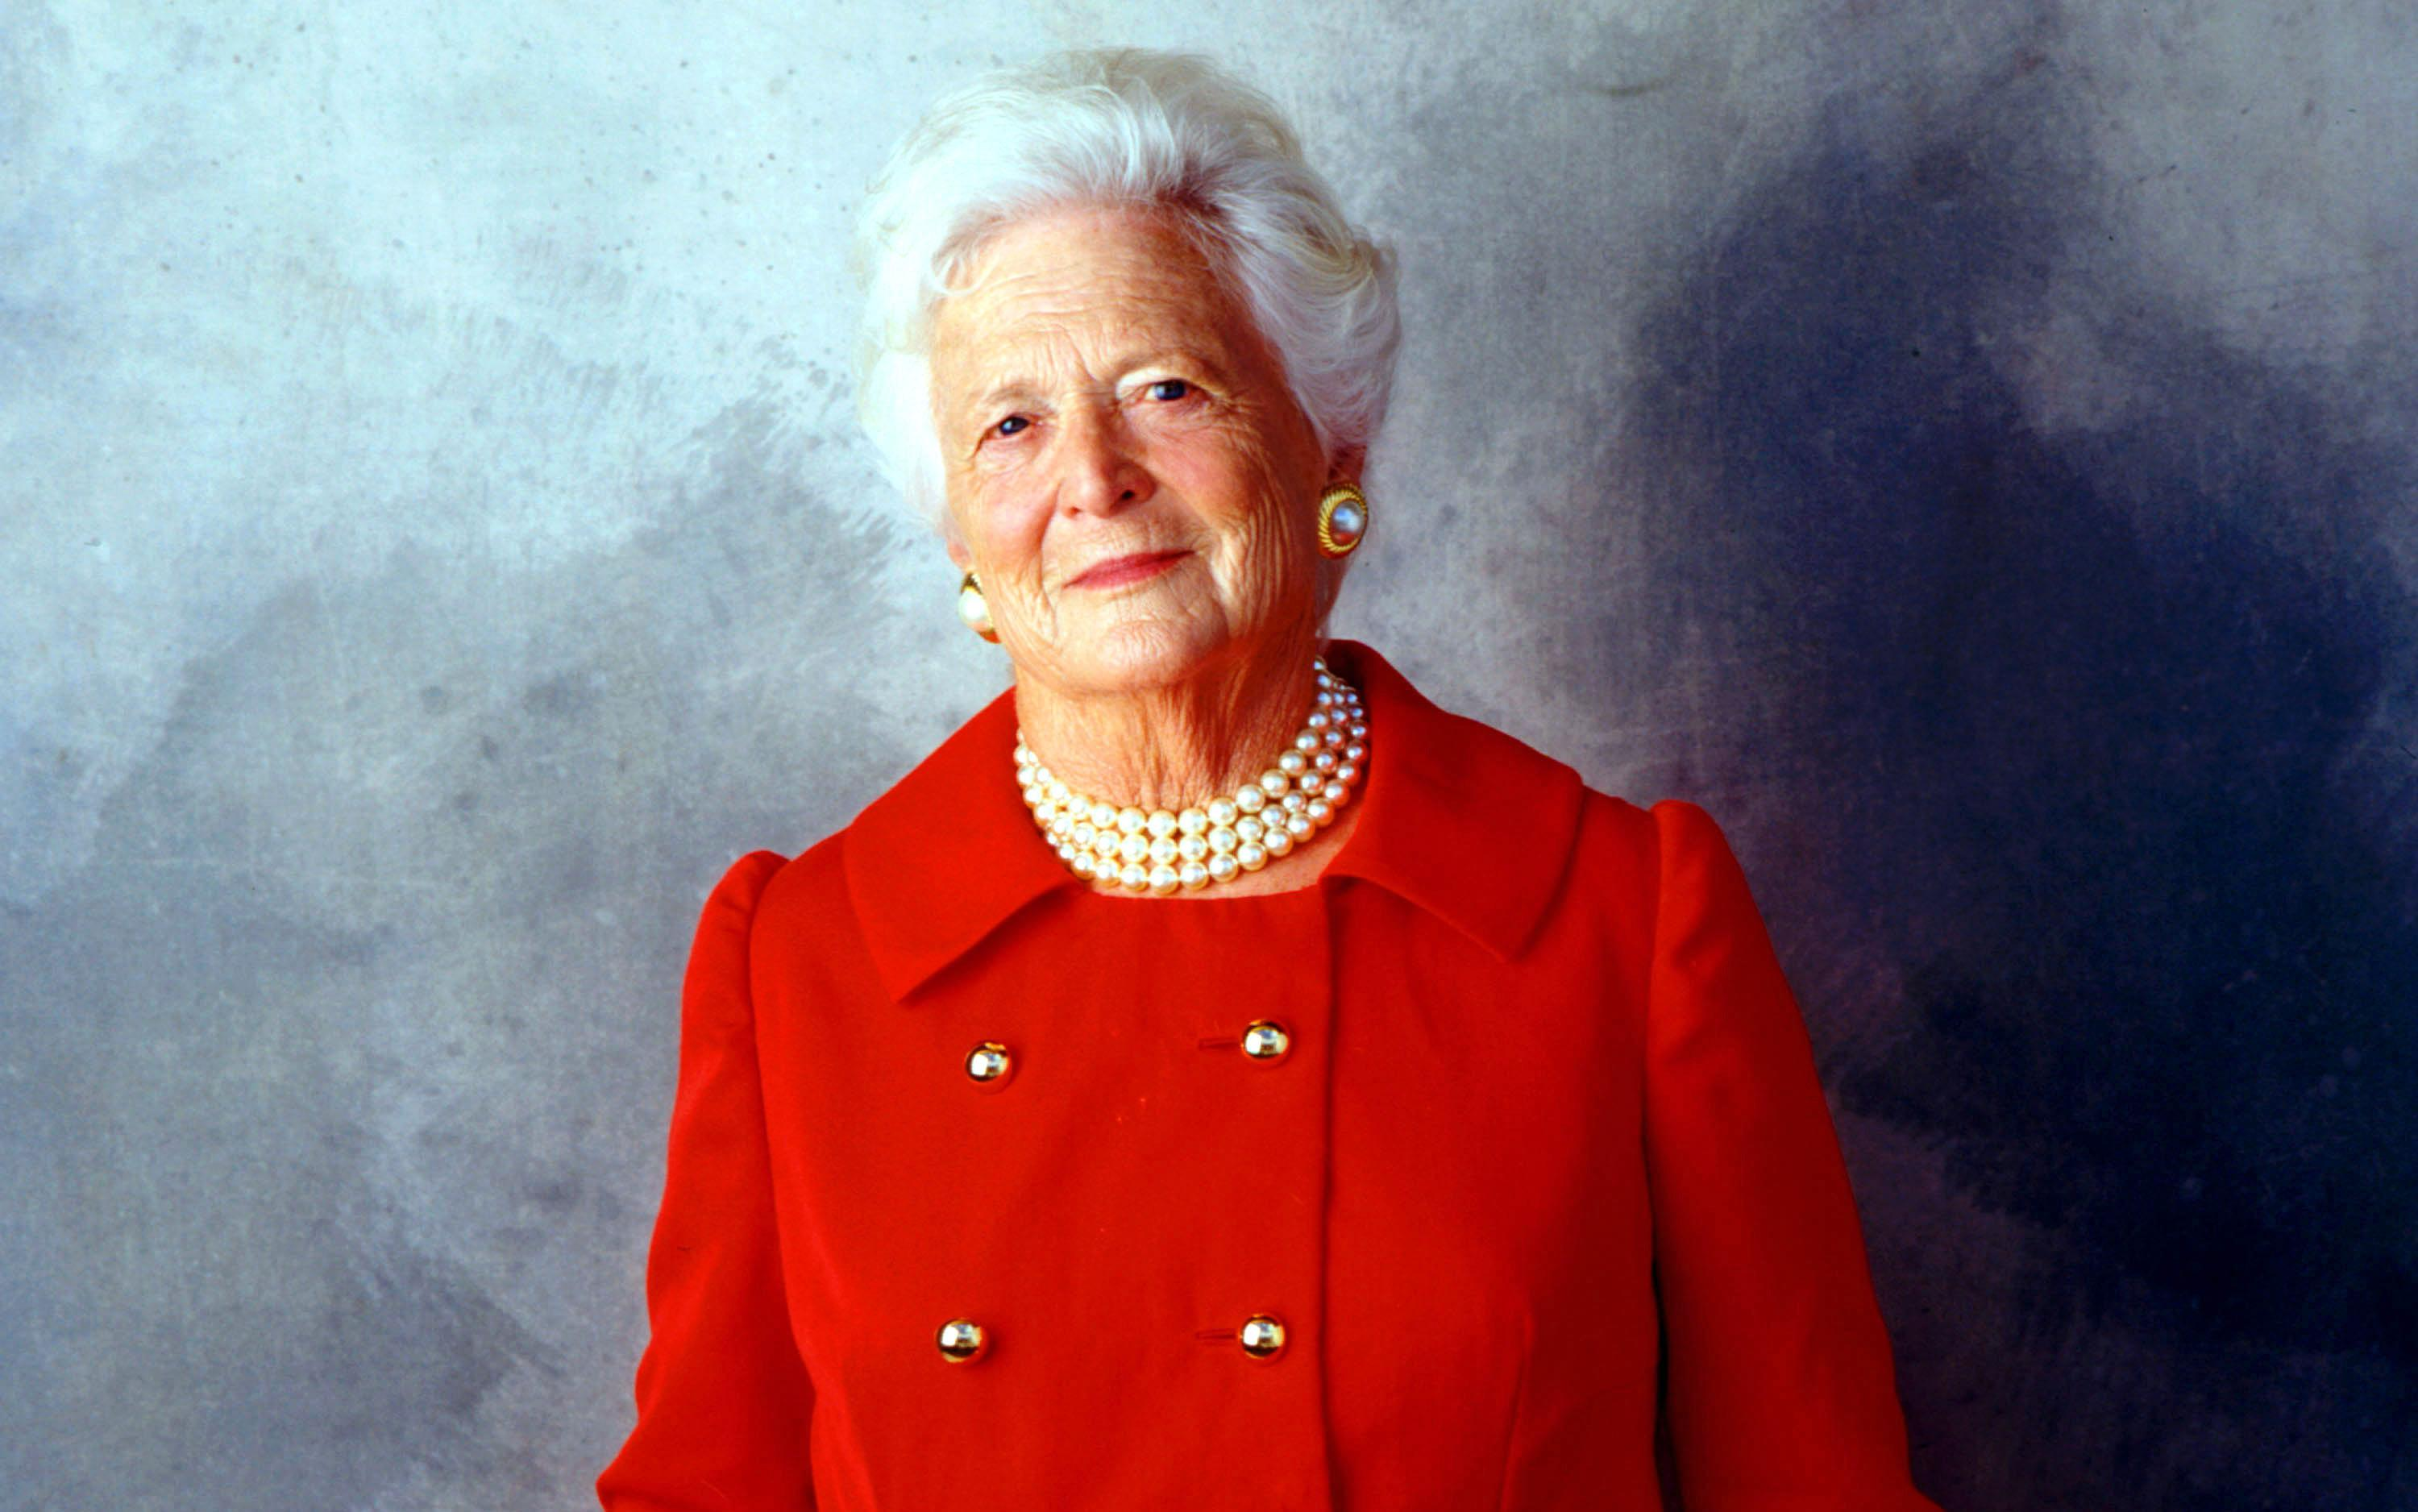 <p>Former first lady Barbara Bush on Aug. 23, 2001, in Houston, Texas. (Photo: Pam Francis/Getty Images) </p>